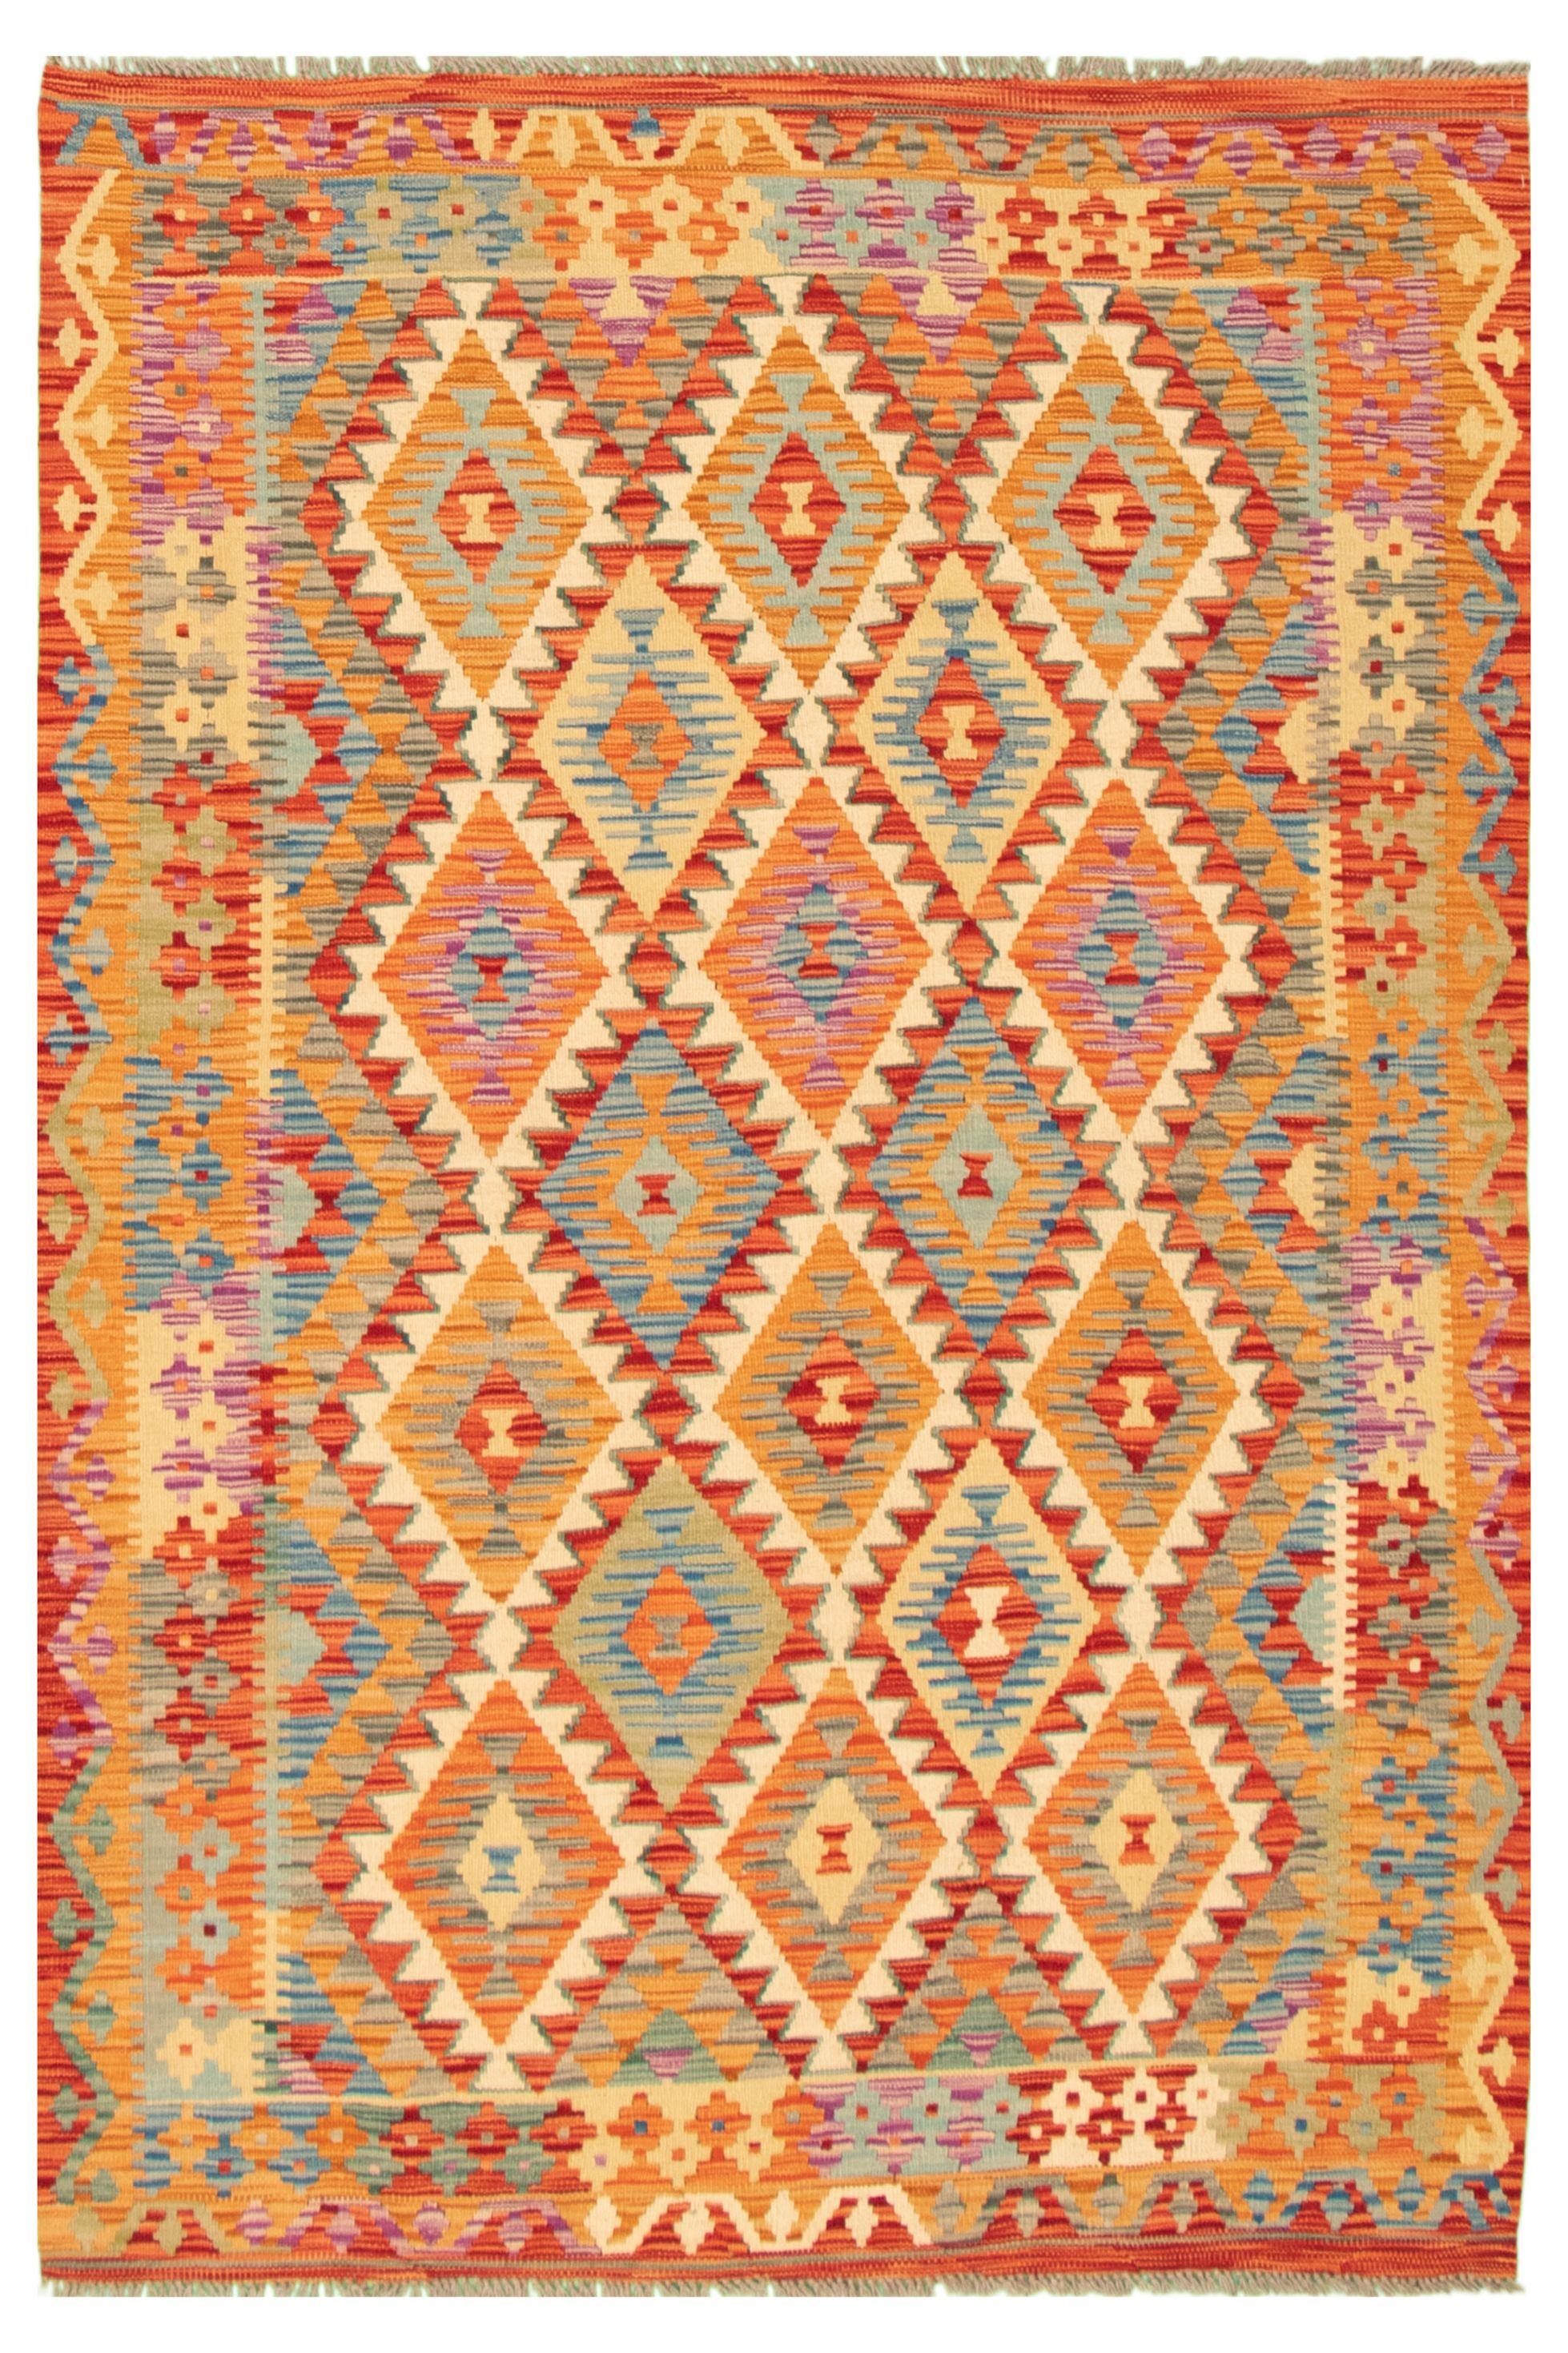 "Hand woven Bold and Colorful  Red Wool Kilim 5'1"" x 6'9"" Size: 5'1"" x 6'9"""